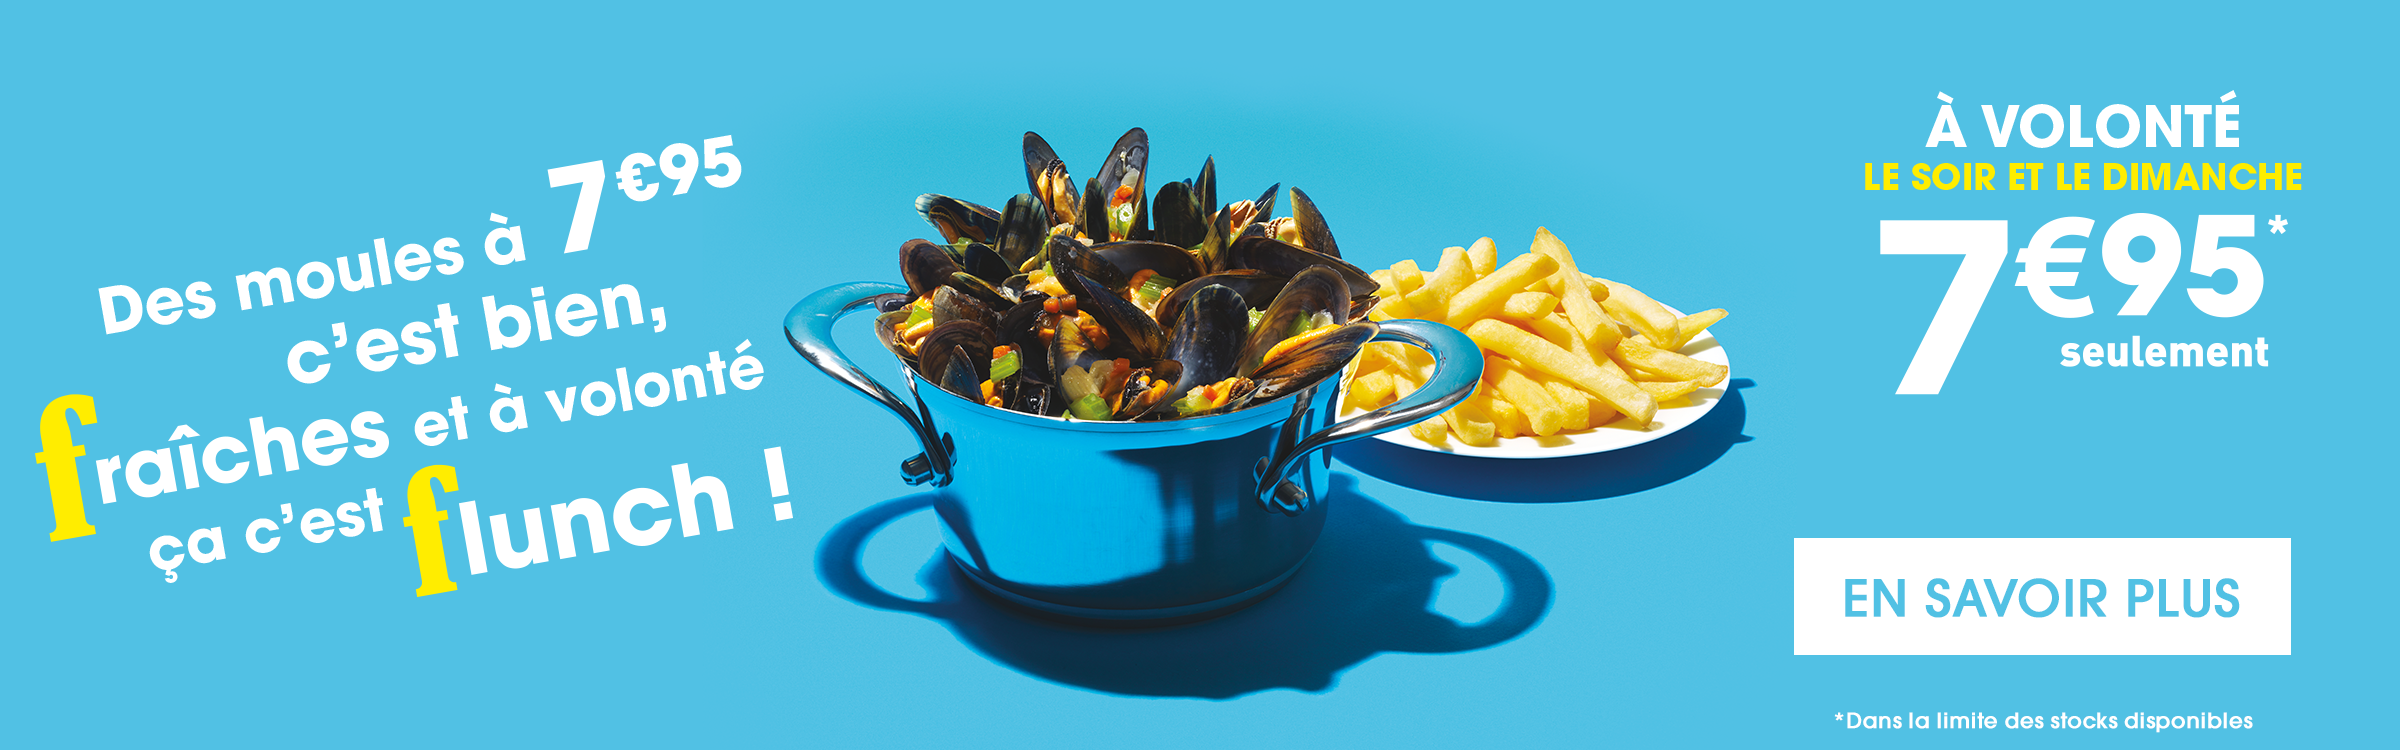 moules flunch